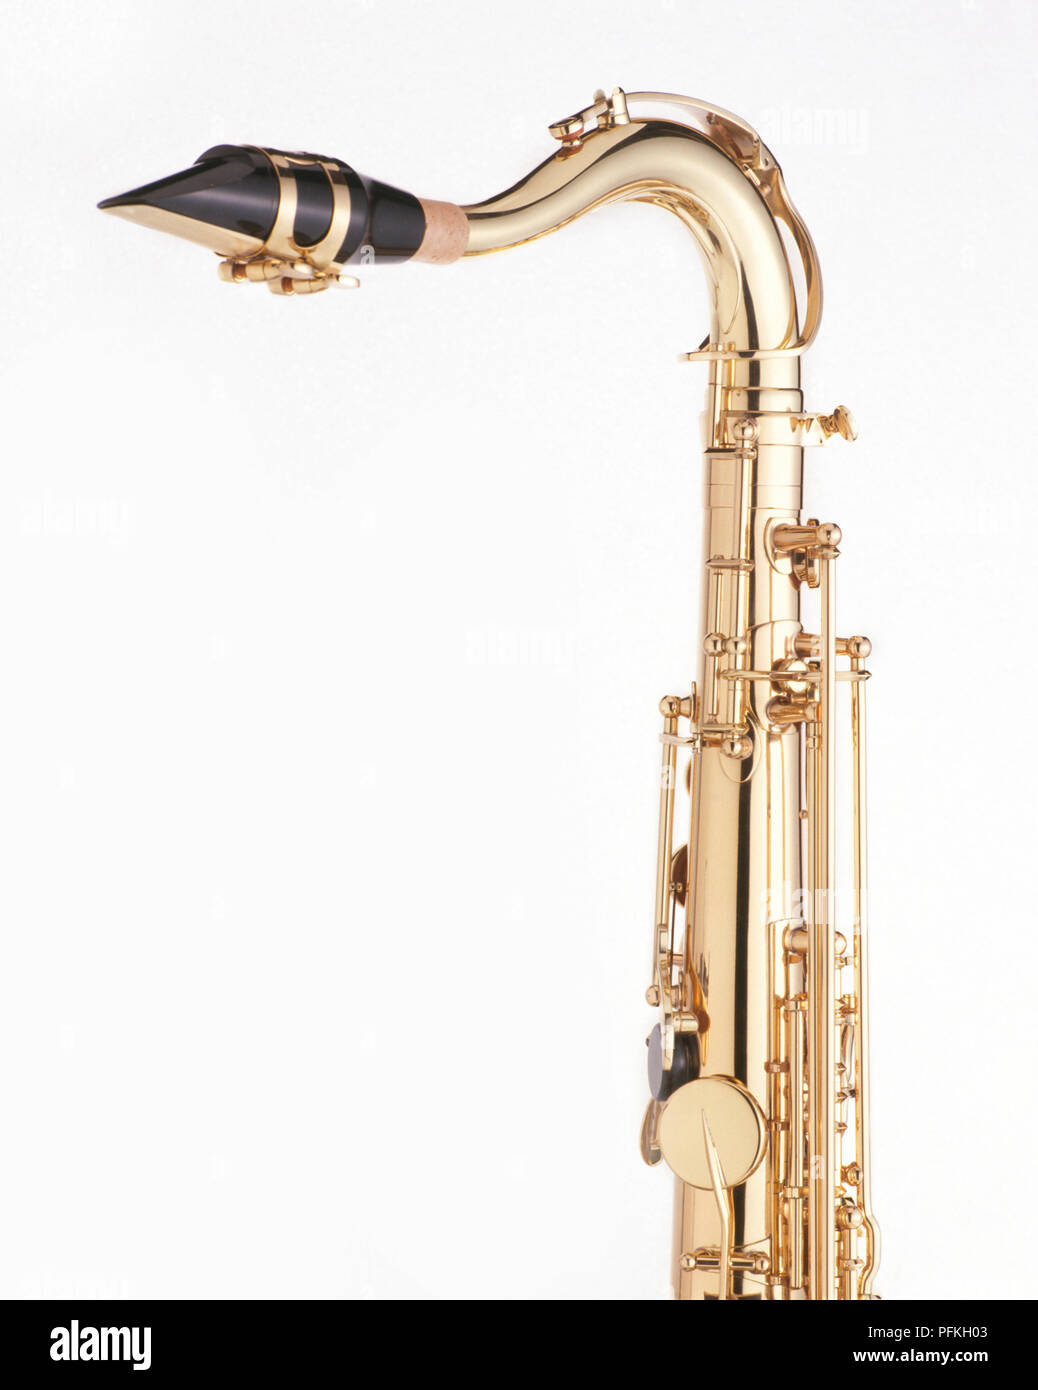 Tenor saxophone, high section with mouthpiece, close-up - Stock Image